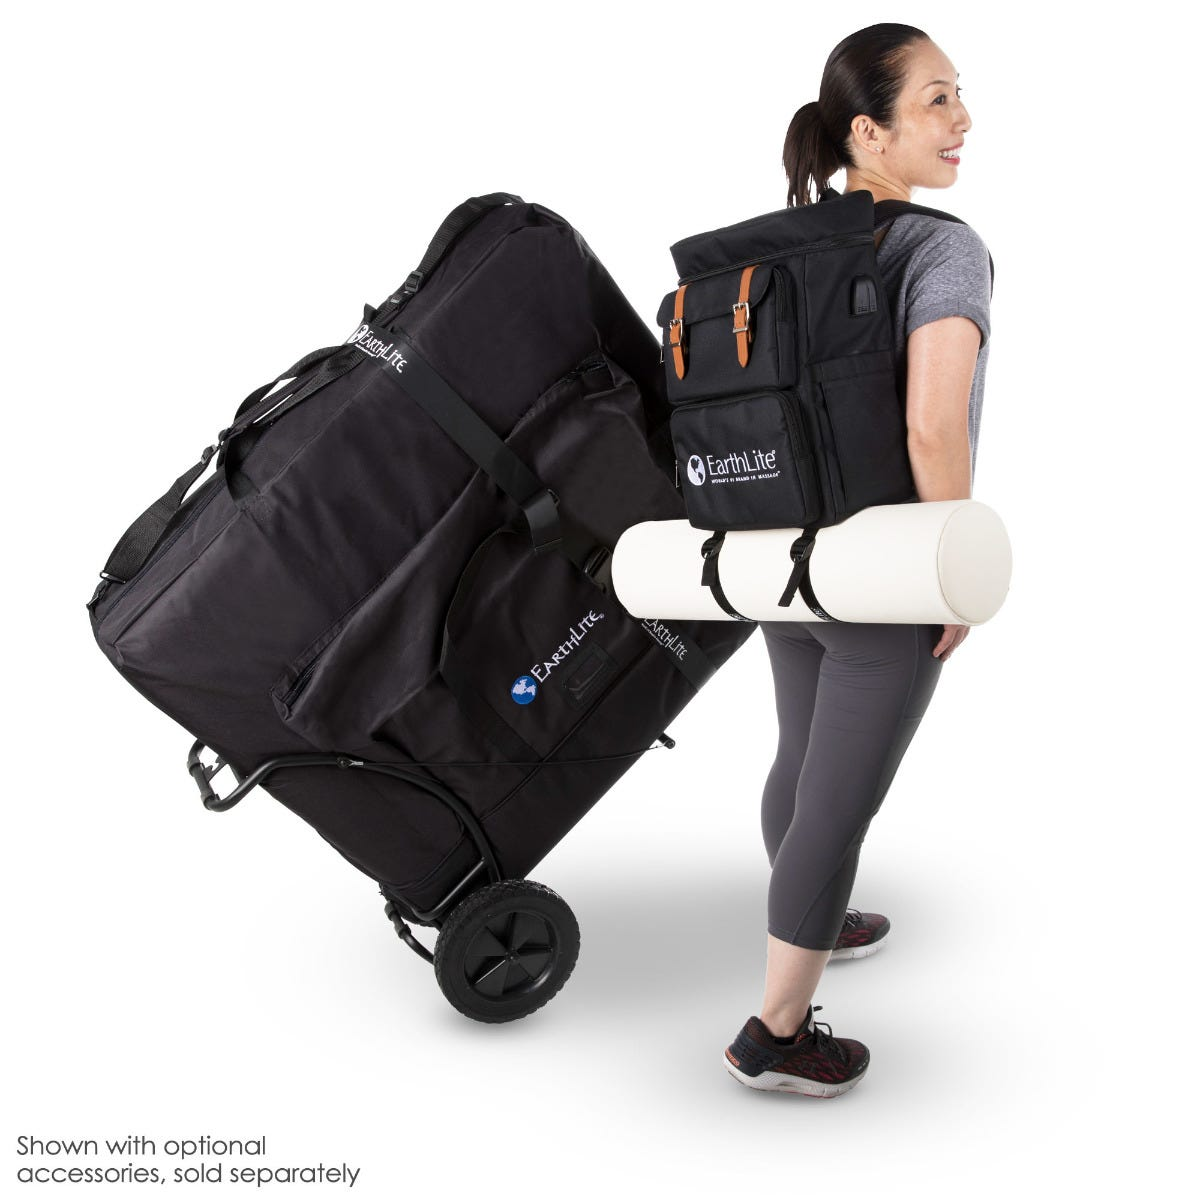 massage table with traveler cart and LMT go-pack